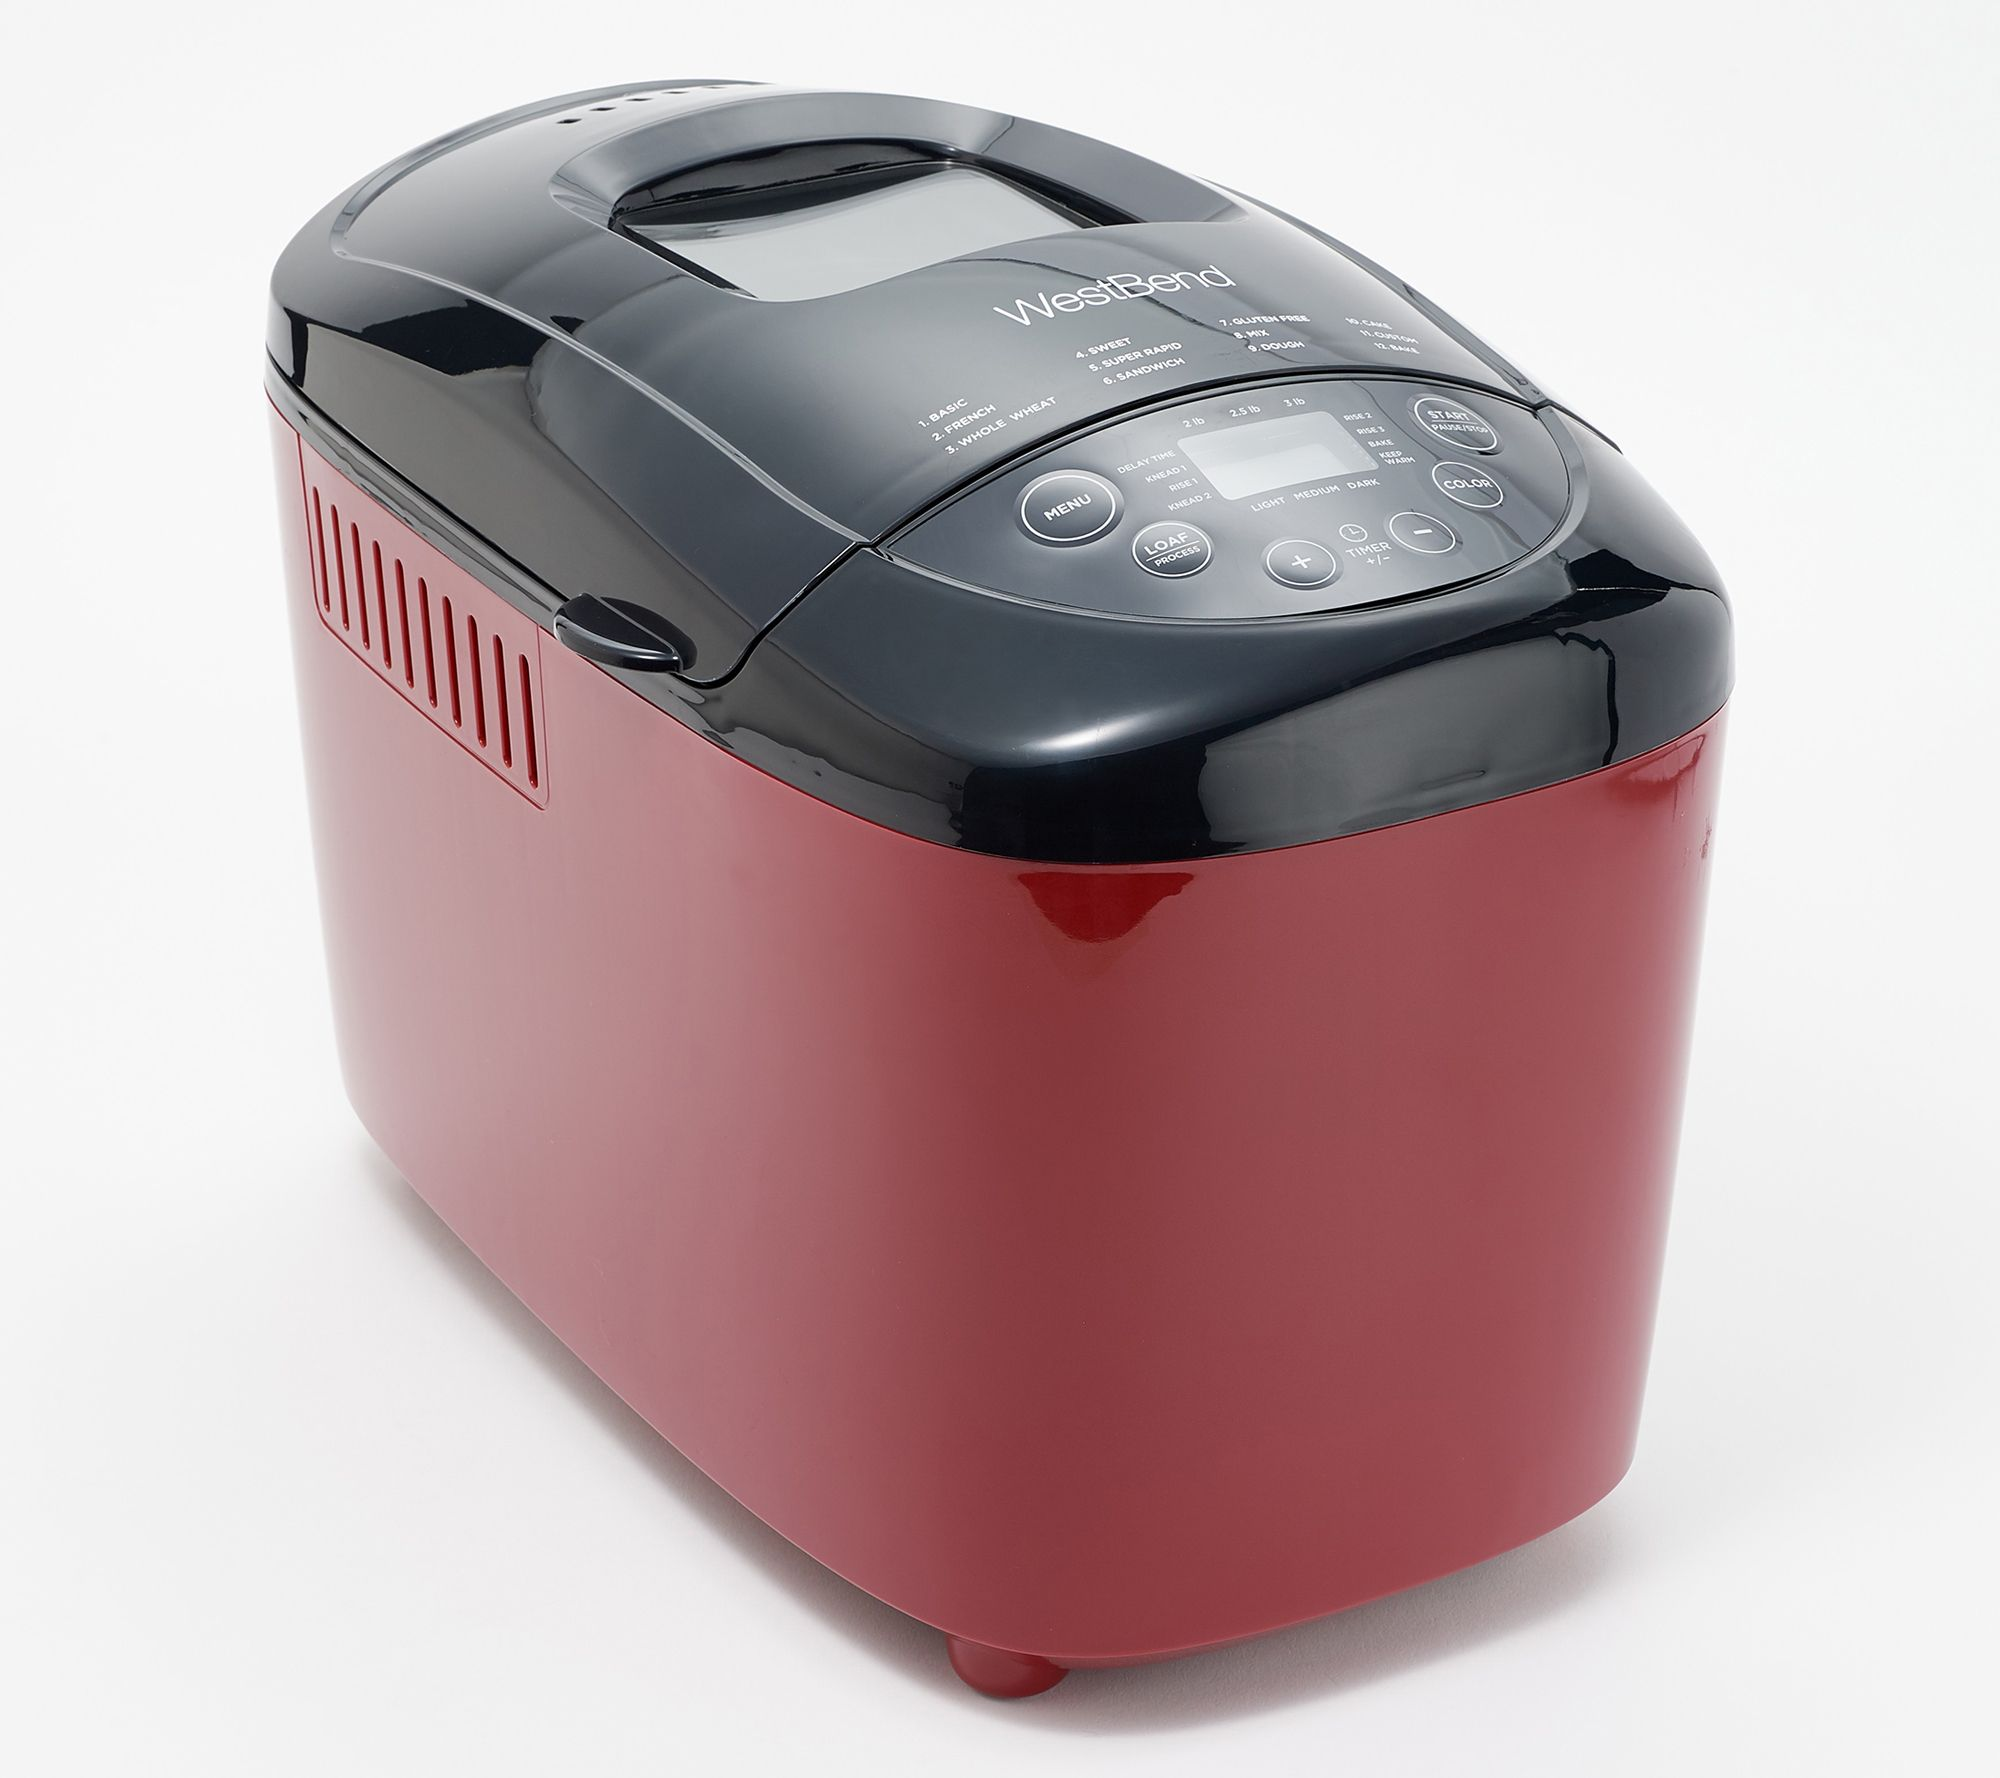 Bake a homemade loaf in a new breadmaker